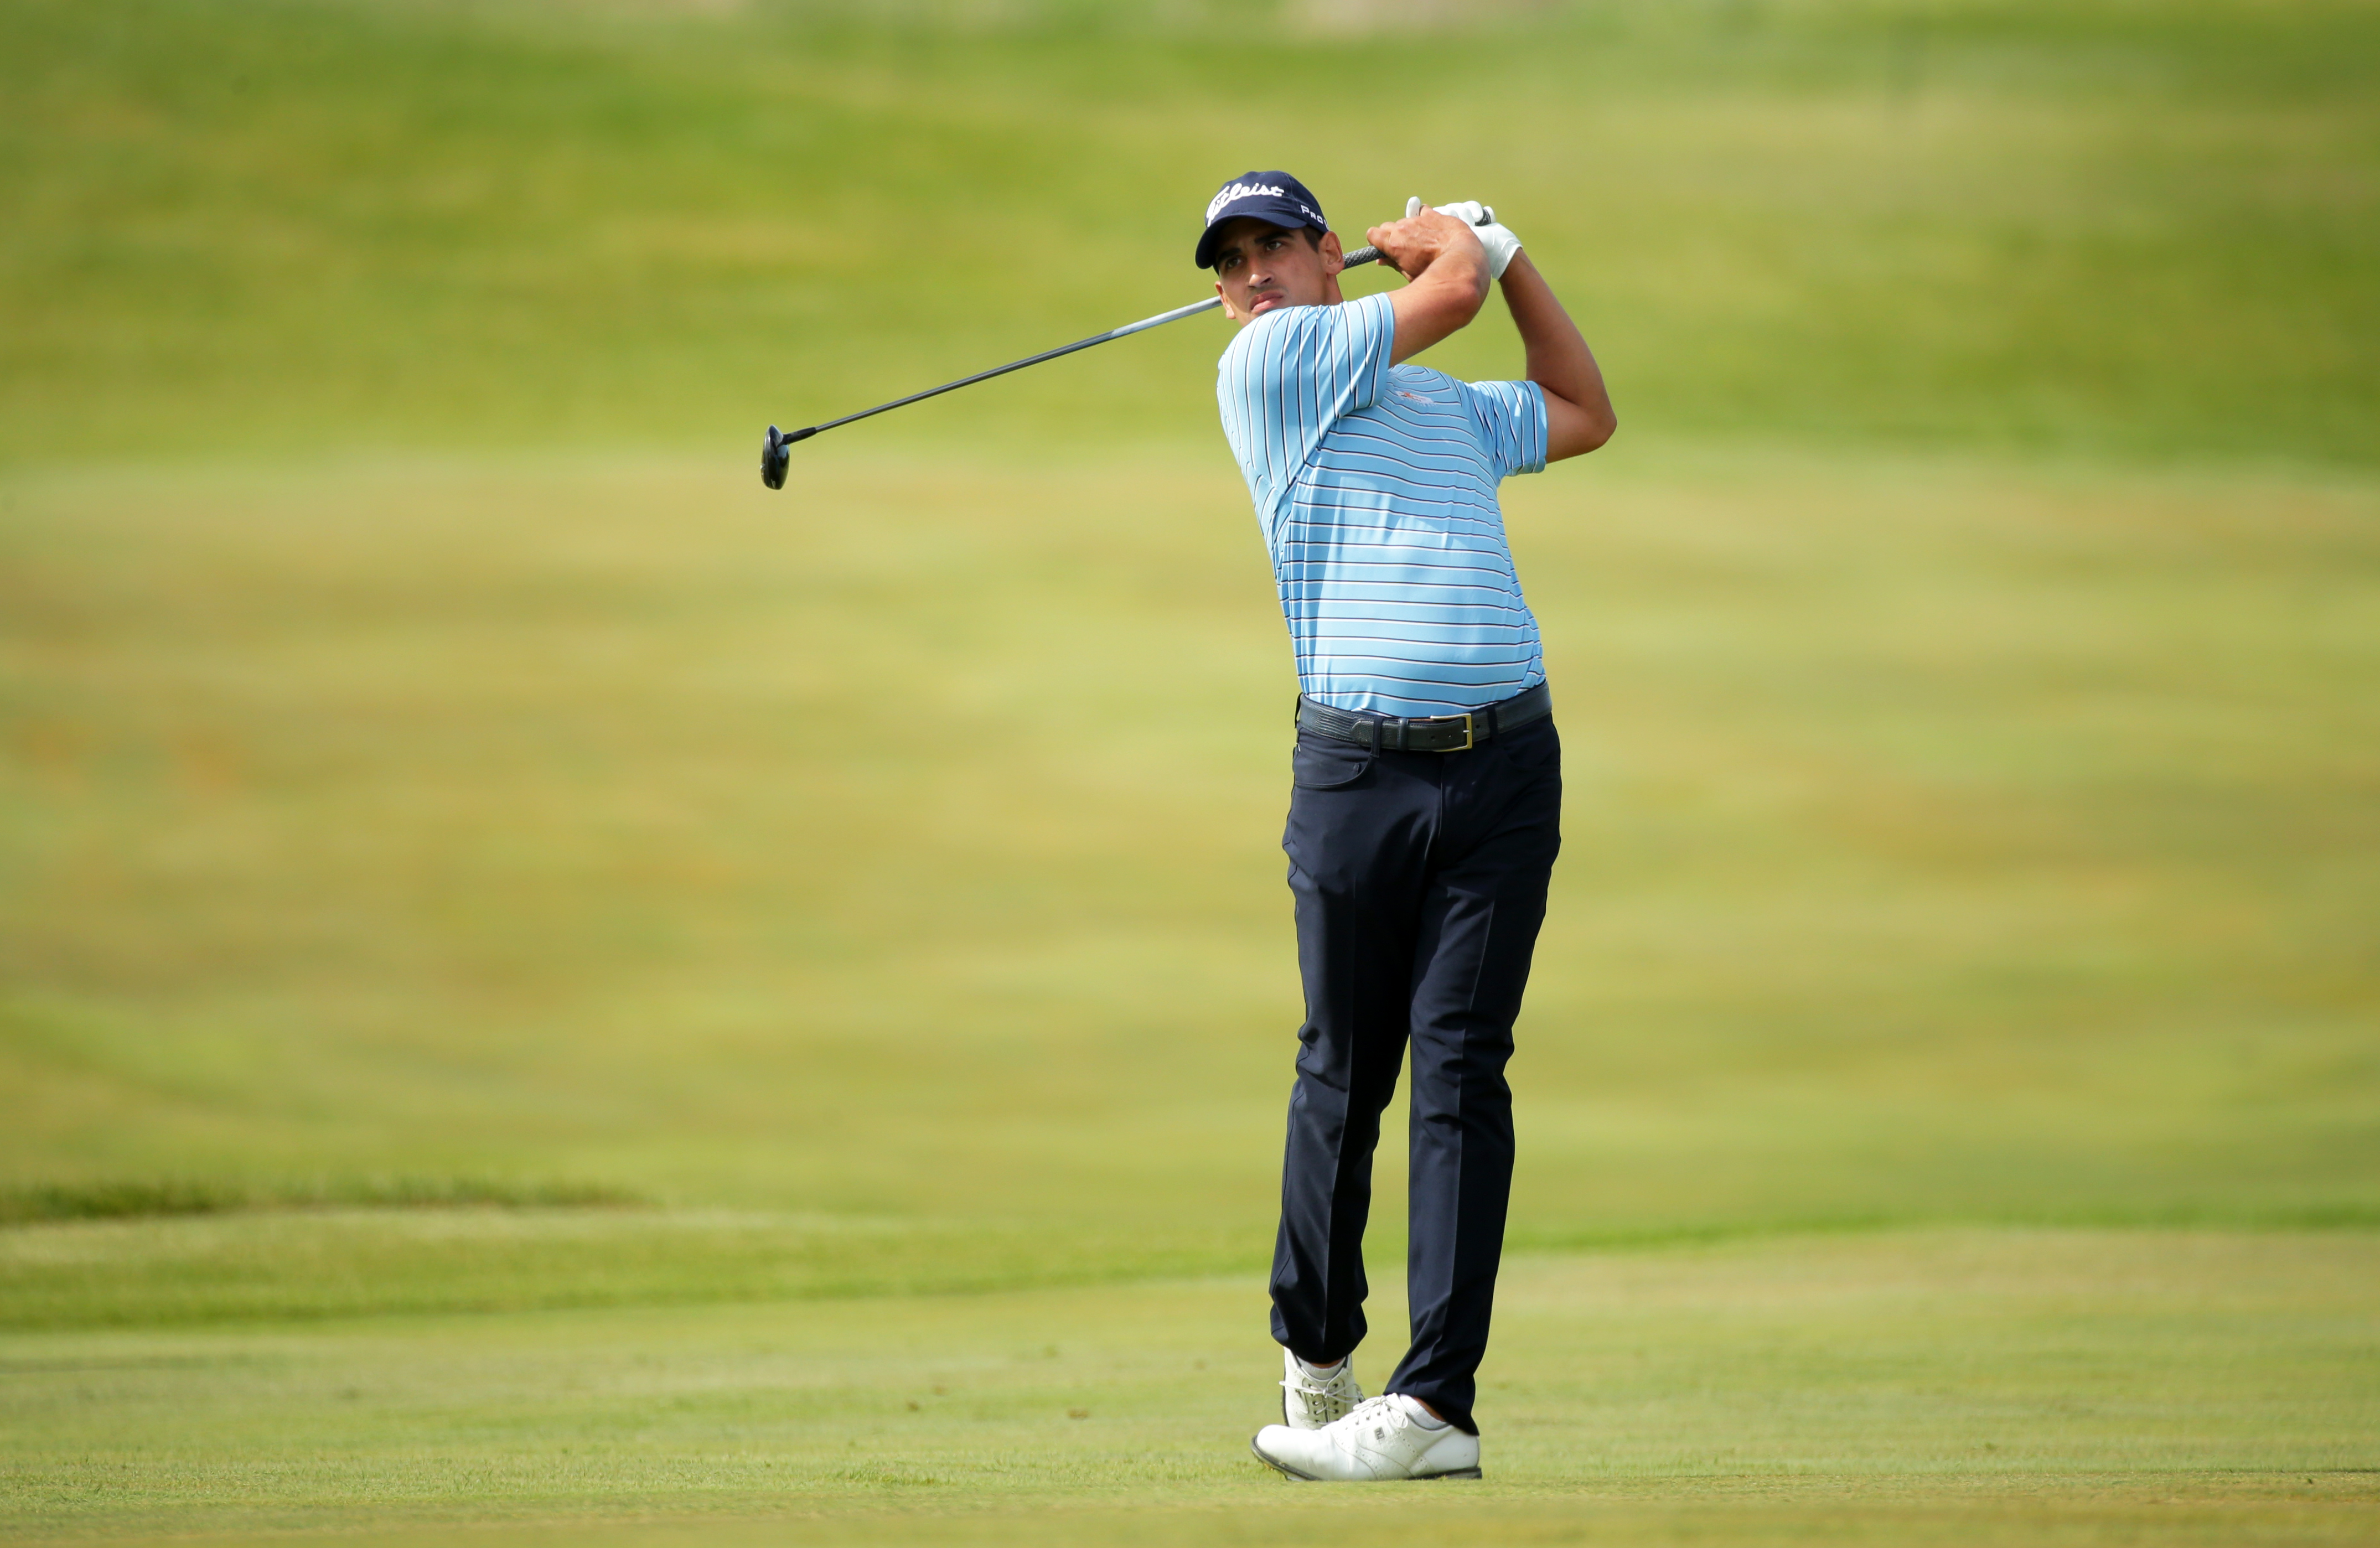 Rochester's Dominic Bozzelli is ninth on the Web.com Tour money list. (Getty Images)